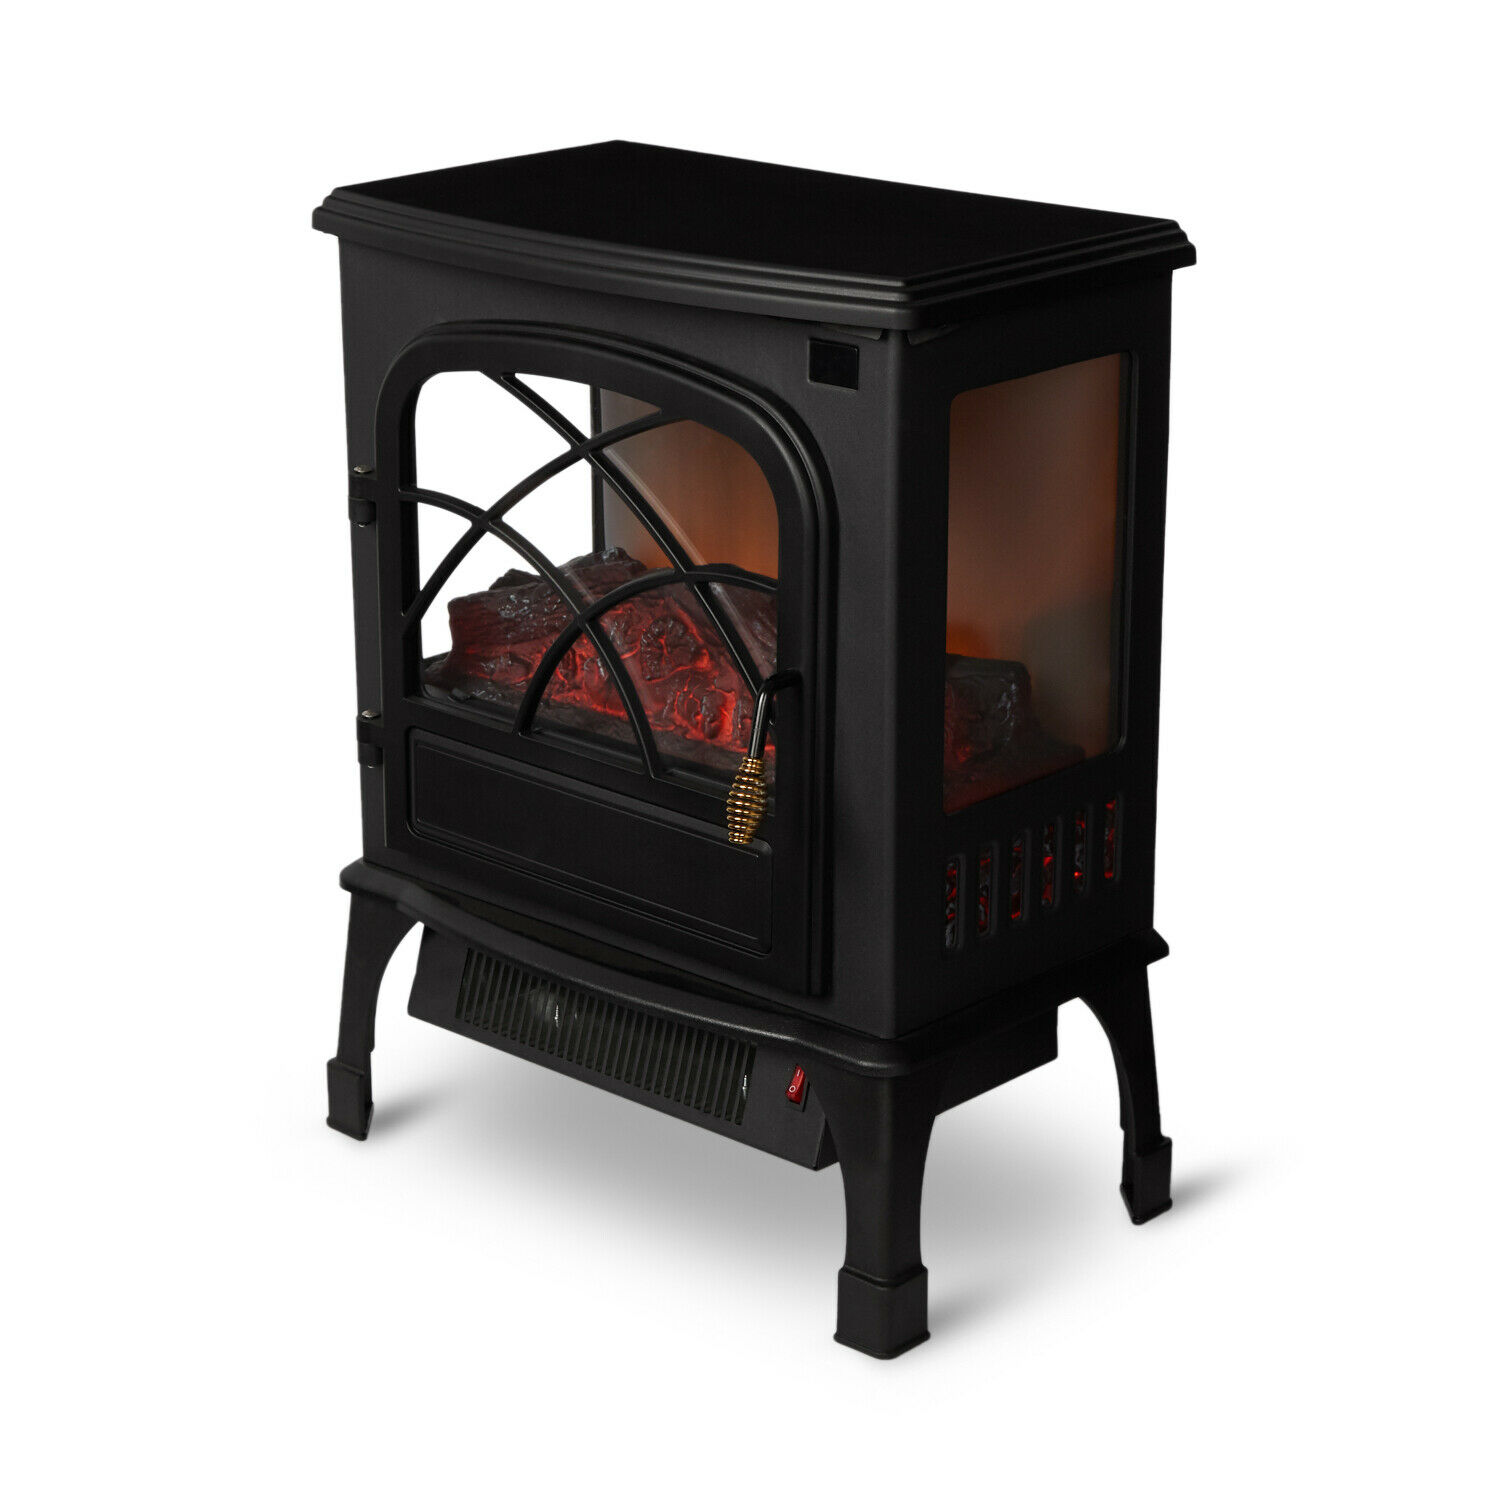 UPC 193802000047 product image for Limina Electric 1500w Stove Fireplace Infrared Quartz Space Heater (open Box) | upcitemdb.com